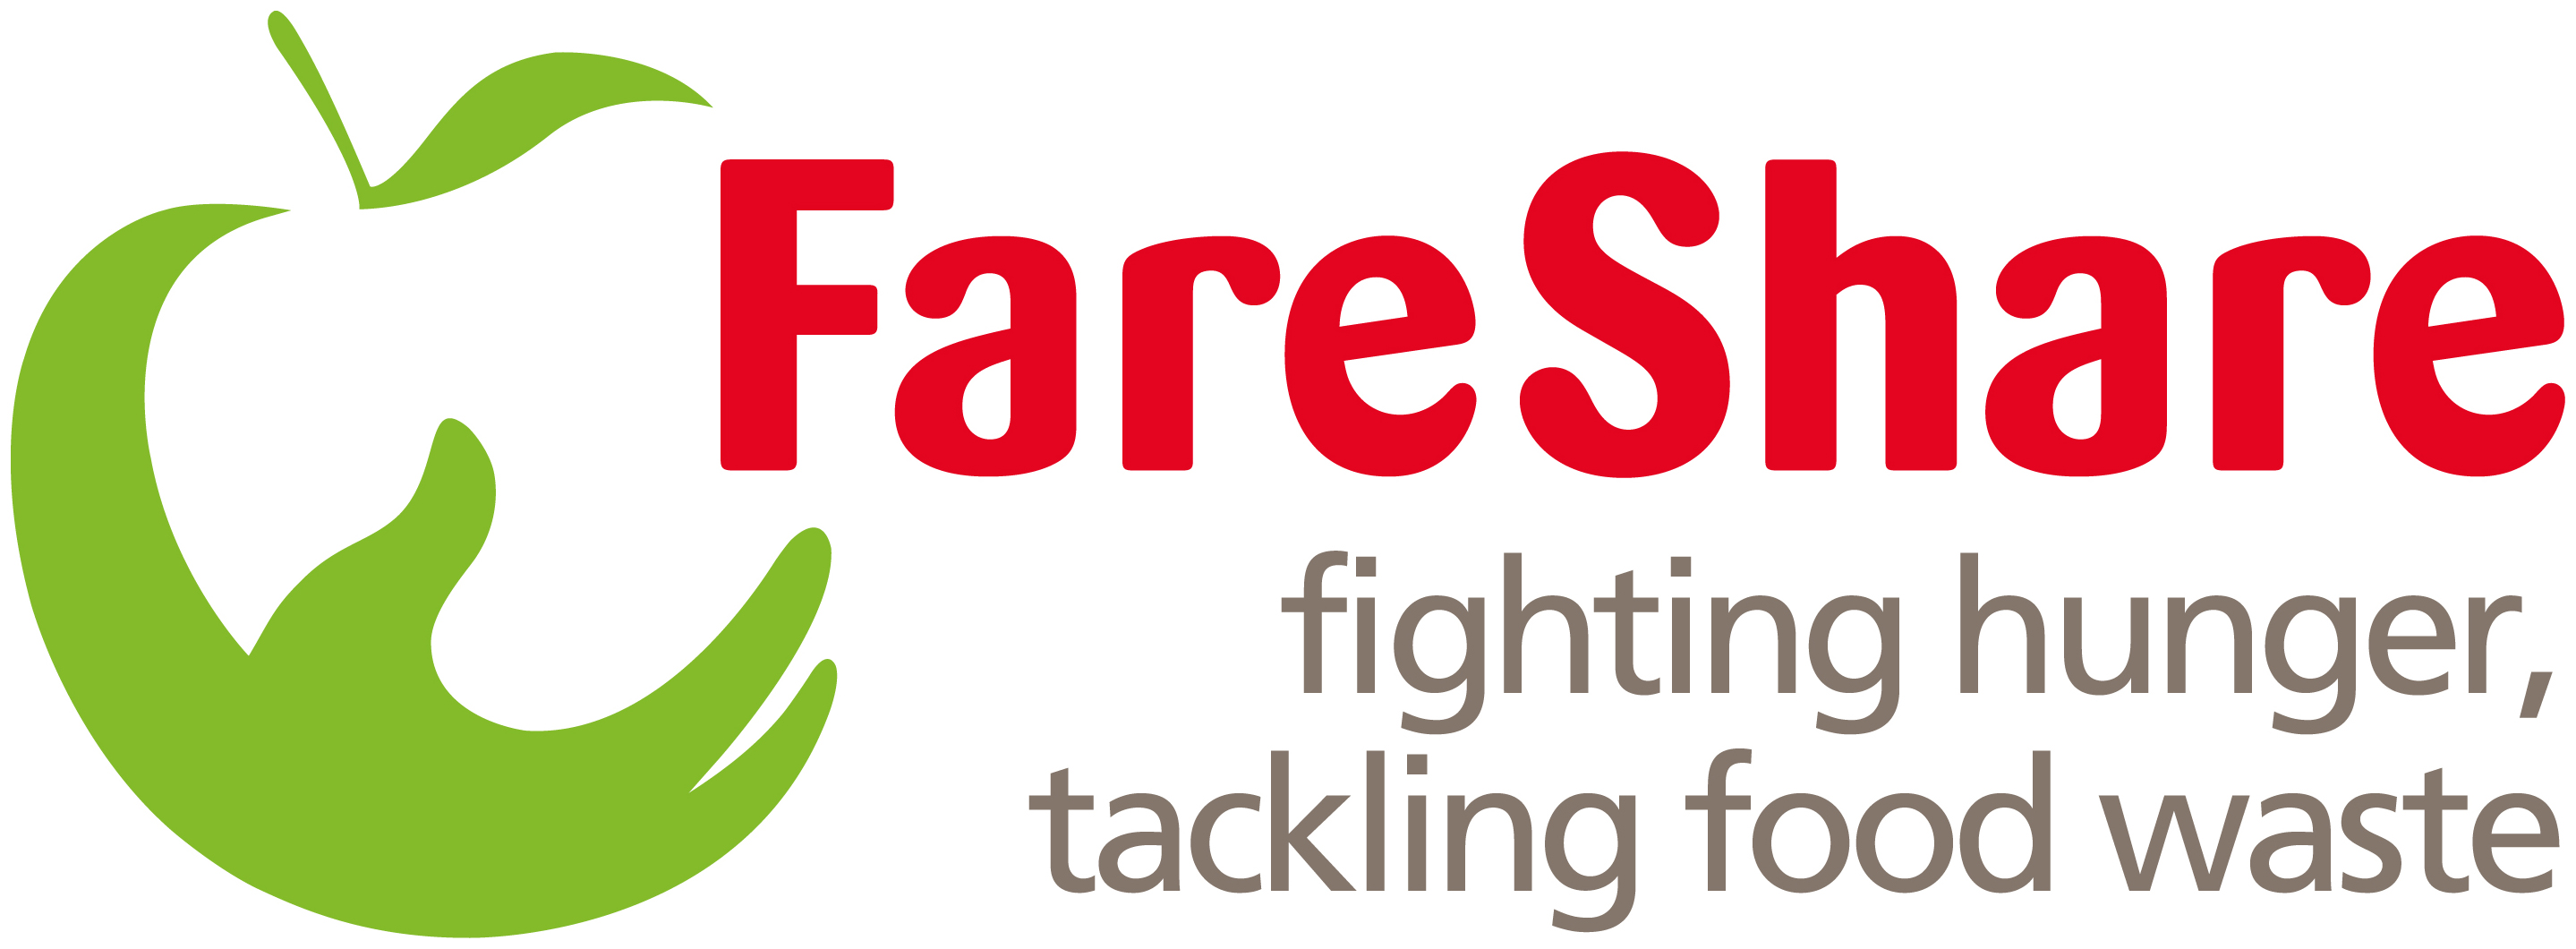 FareShare general use logo